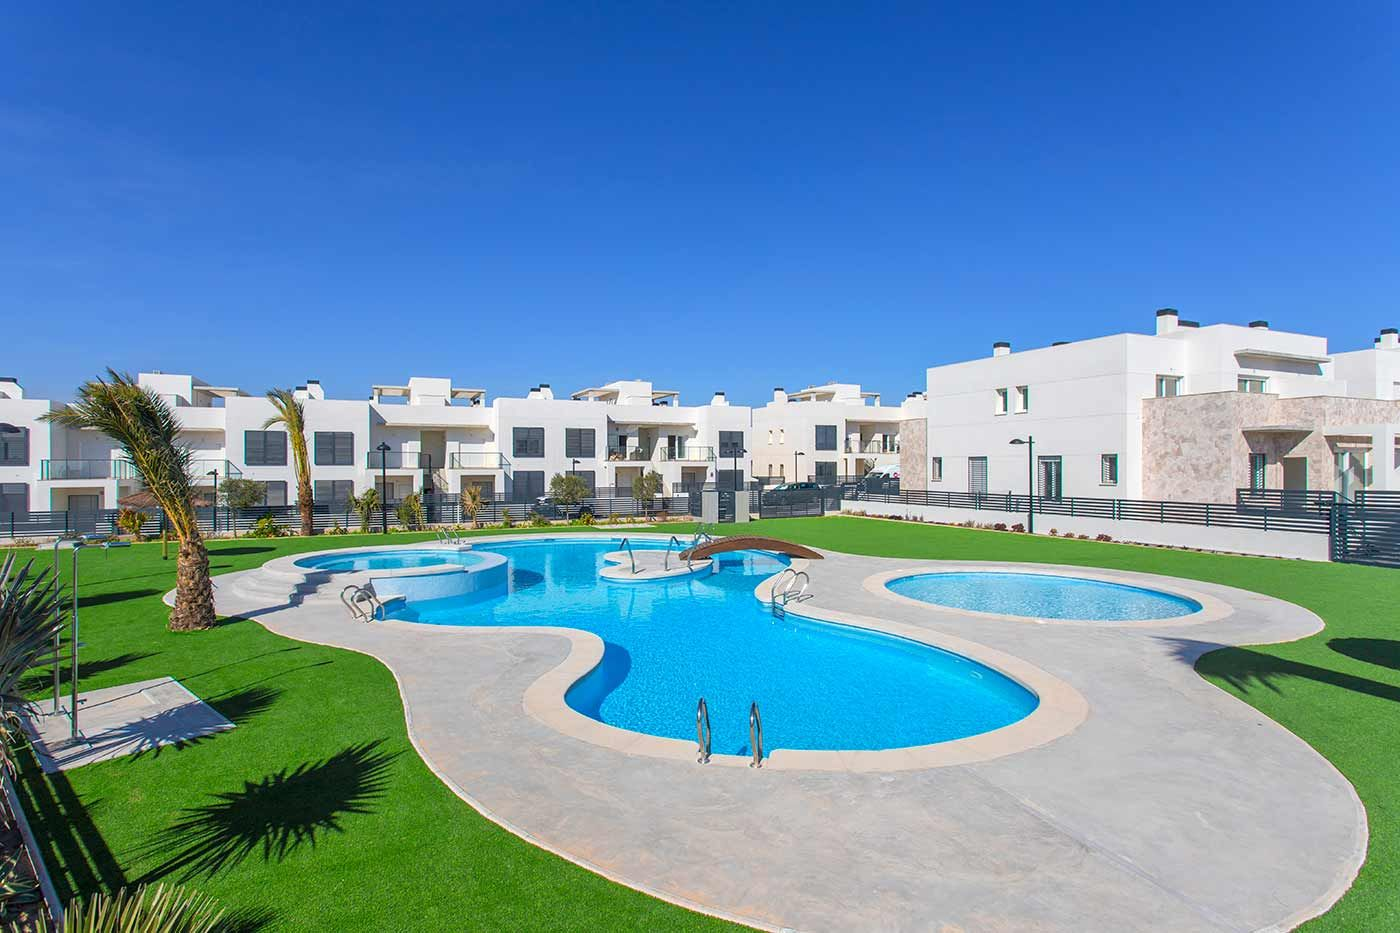 Townhouses and apartments in Torrevieja 2